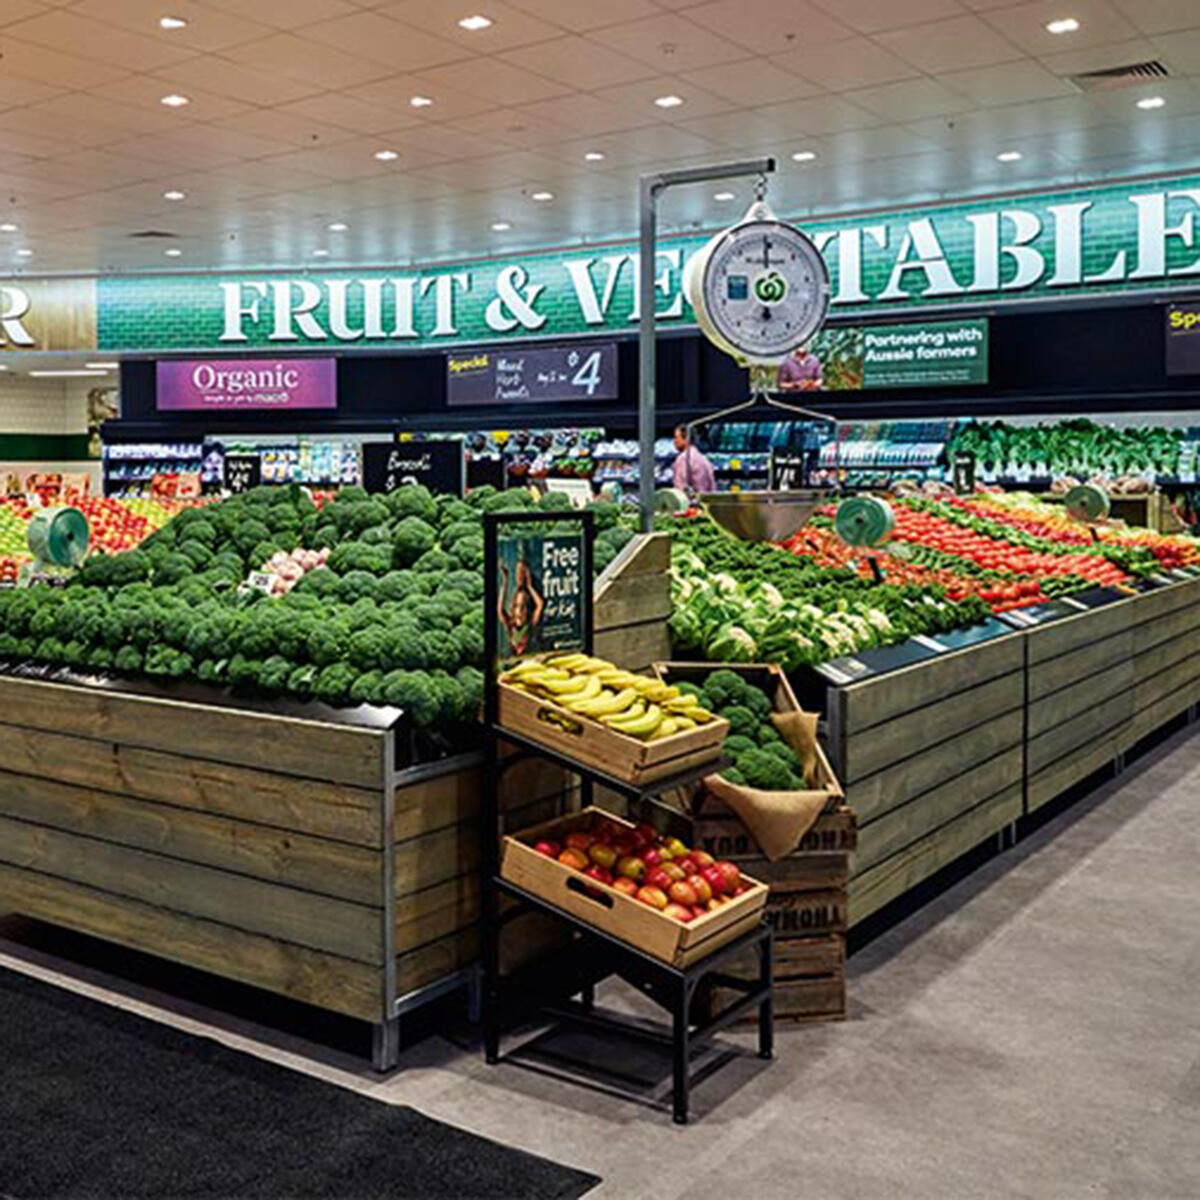 Woolworths' Healthier Options to help shoppers make small but meaningful changes